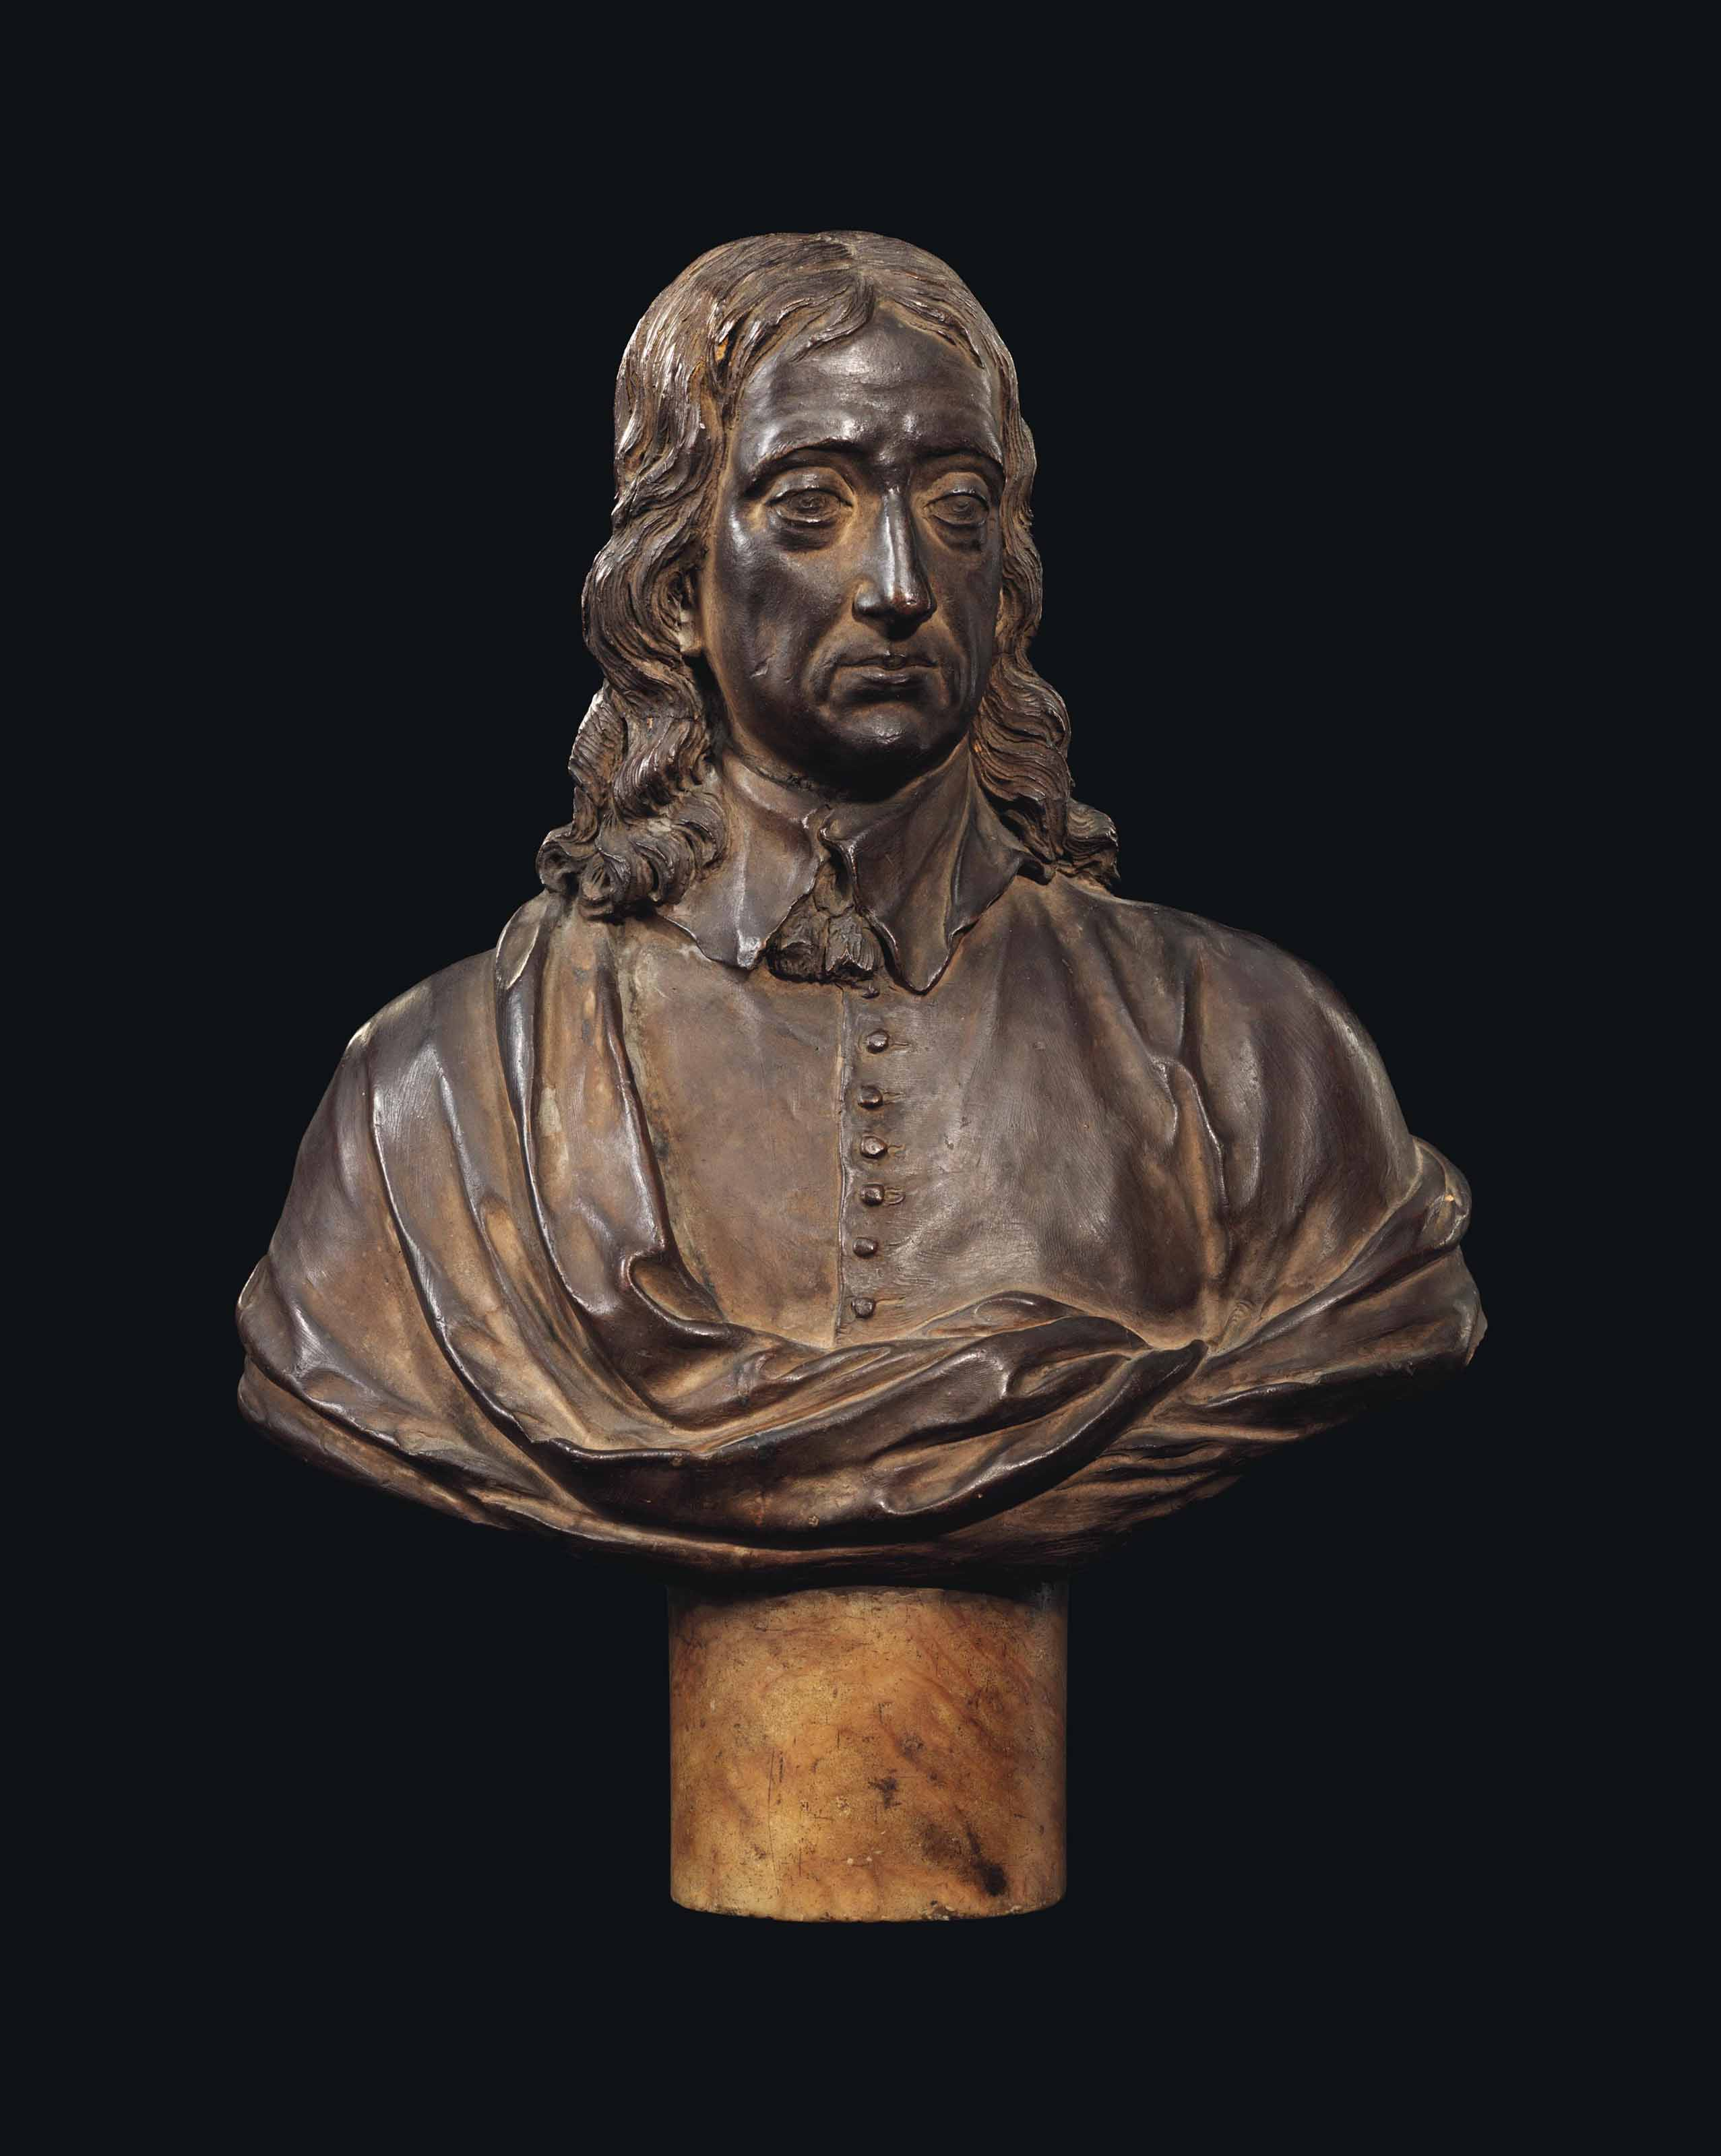 A TERRACOTTA BUST OF JOHN MILTON